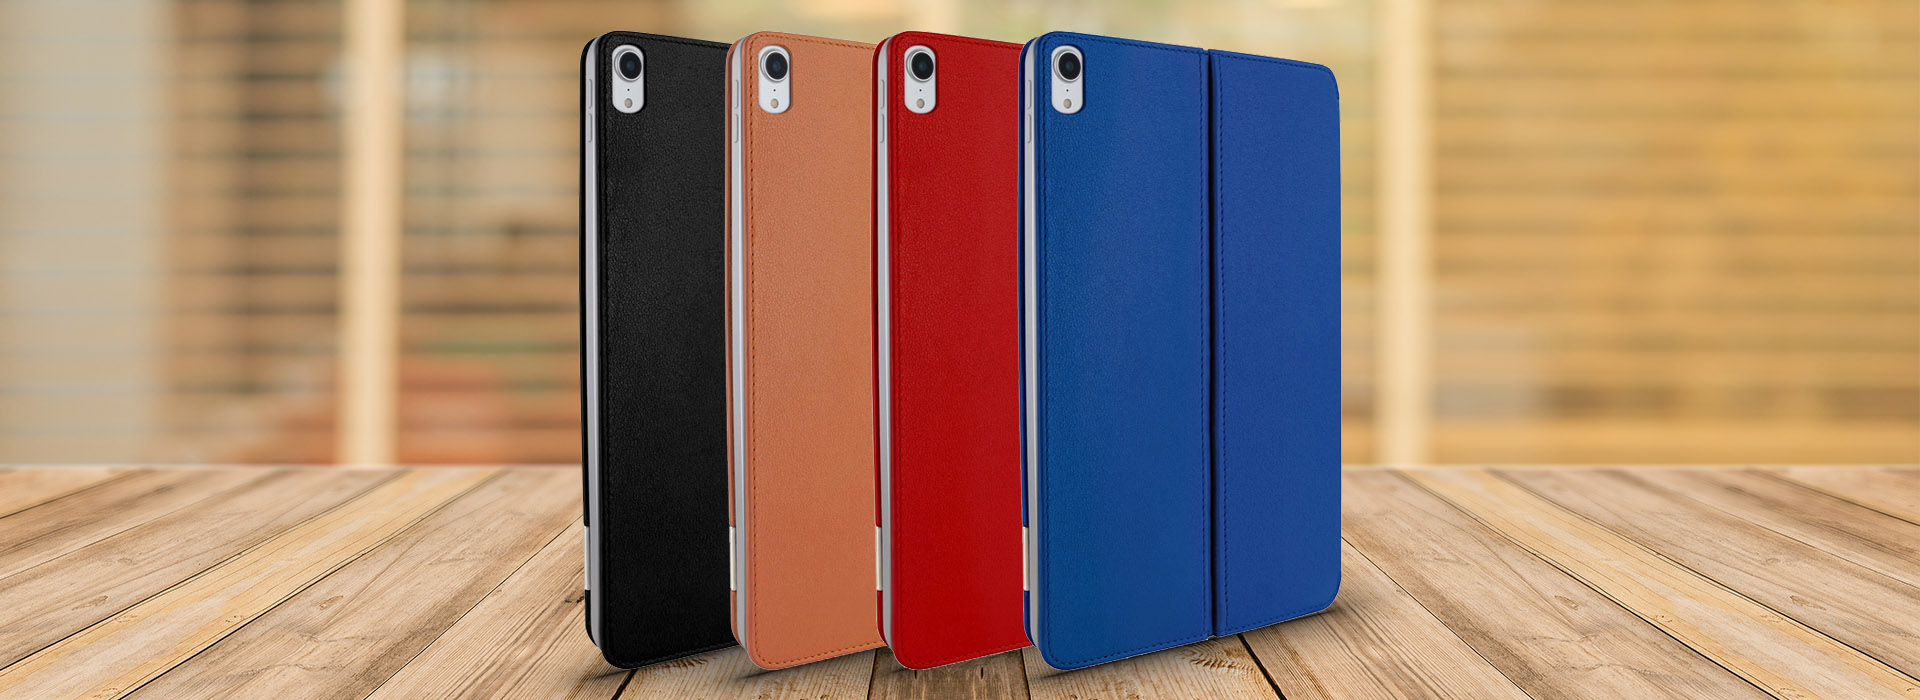 92d4507b7e8 CASES.com - Best Selection of iPhone Cases, iPad Cases and Covers